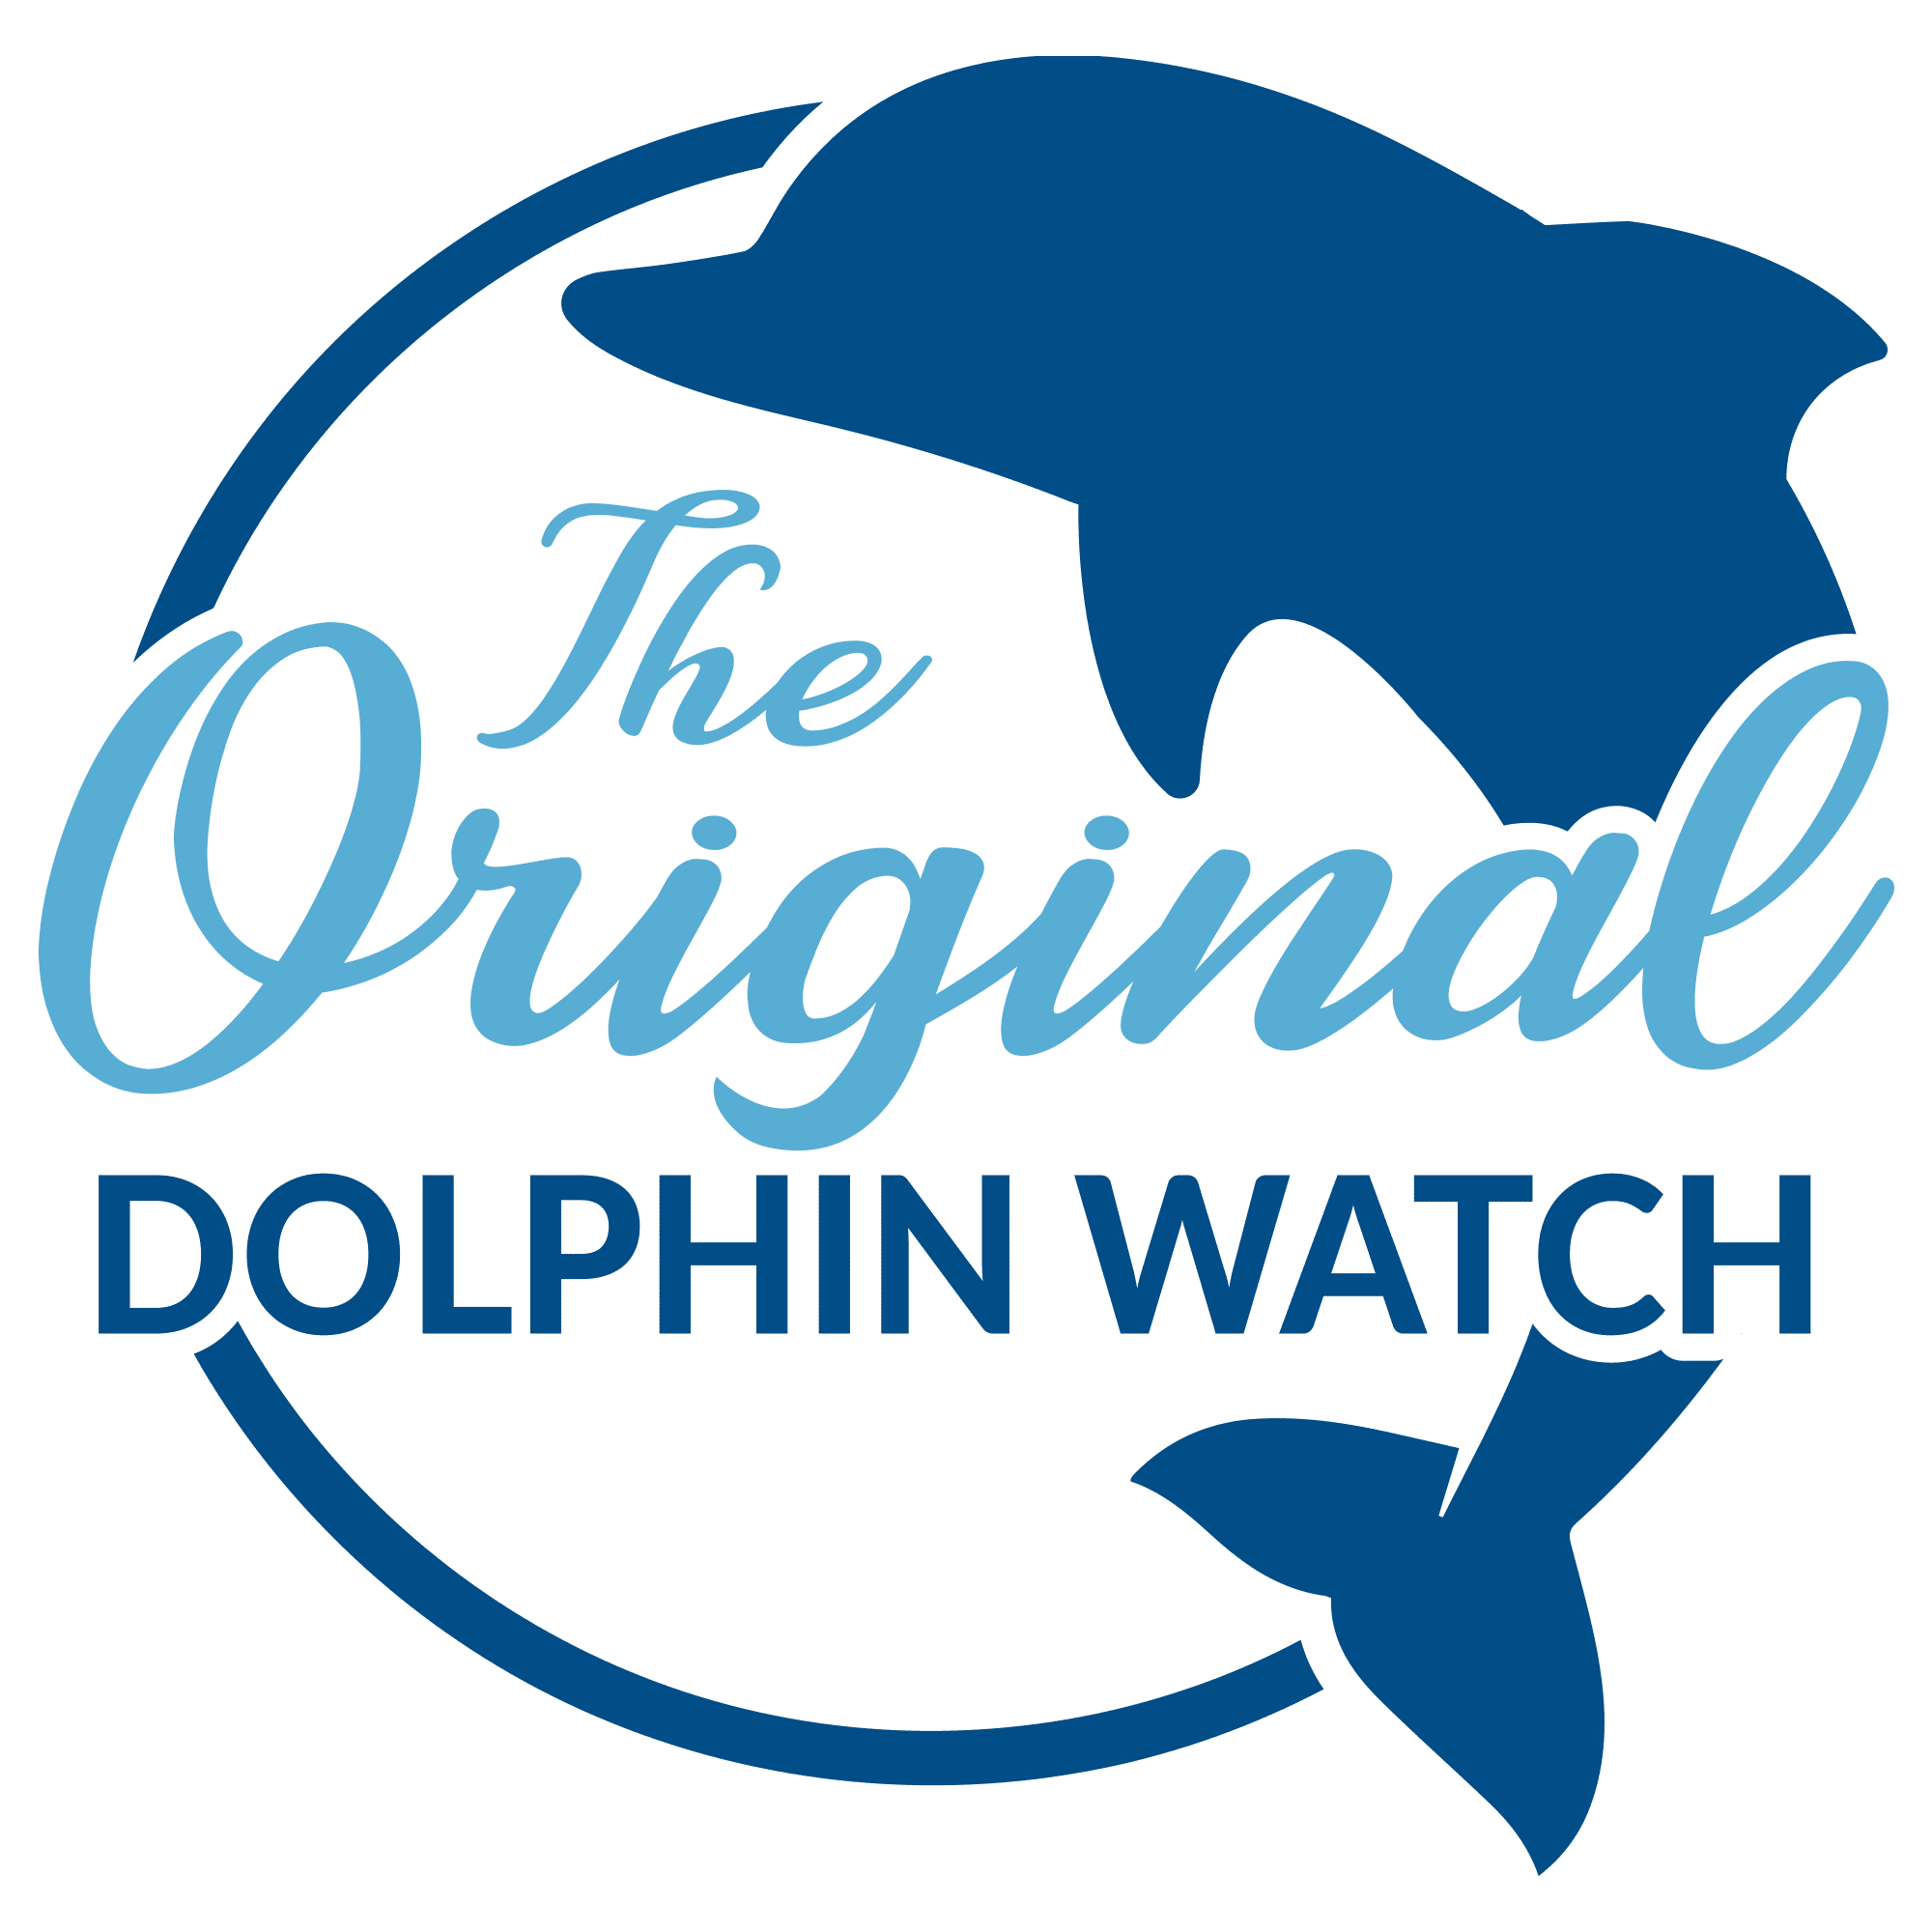 Dolphin Watch South Padre Island The Original Dolphin Watch